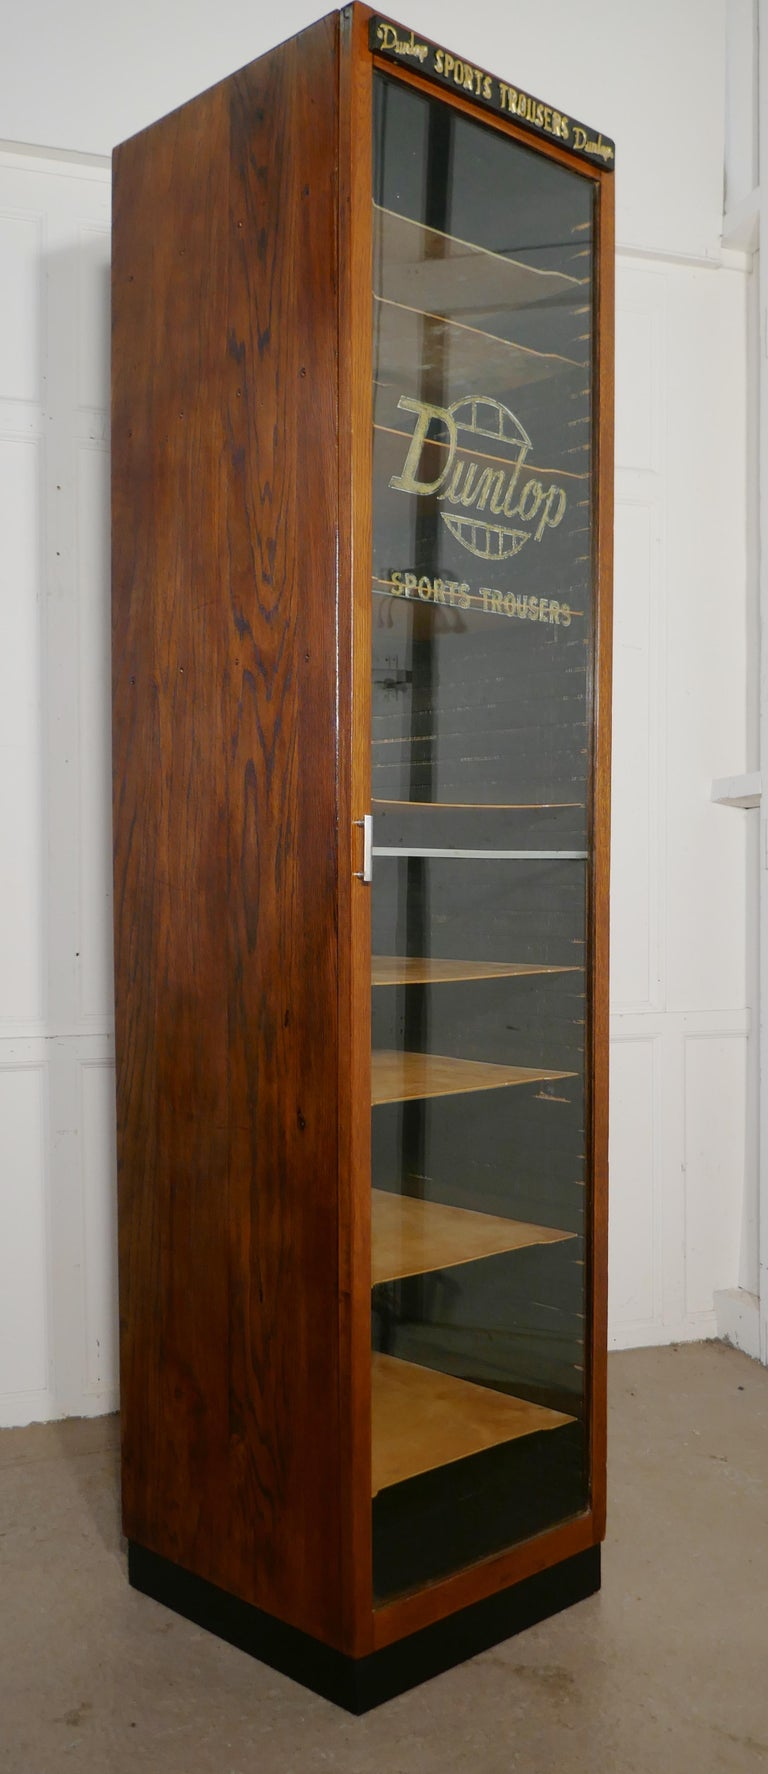 Vintage Art Deco Tall Haberdashery Dunlop Sports Cabinet For Sale 4